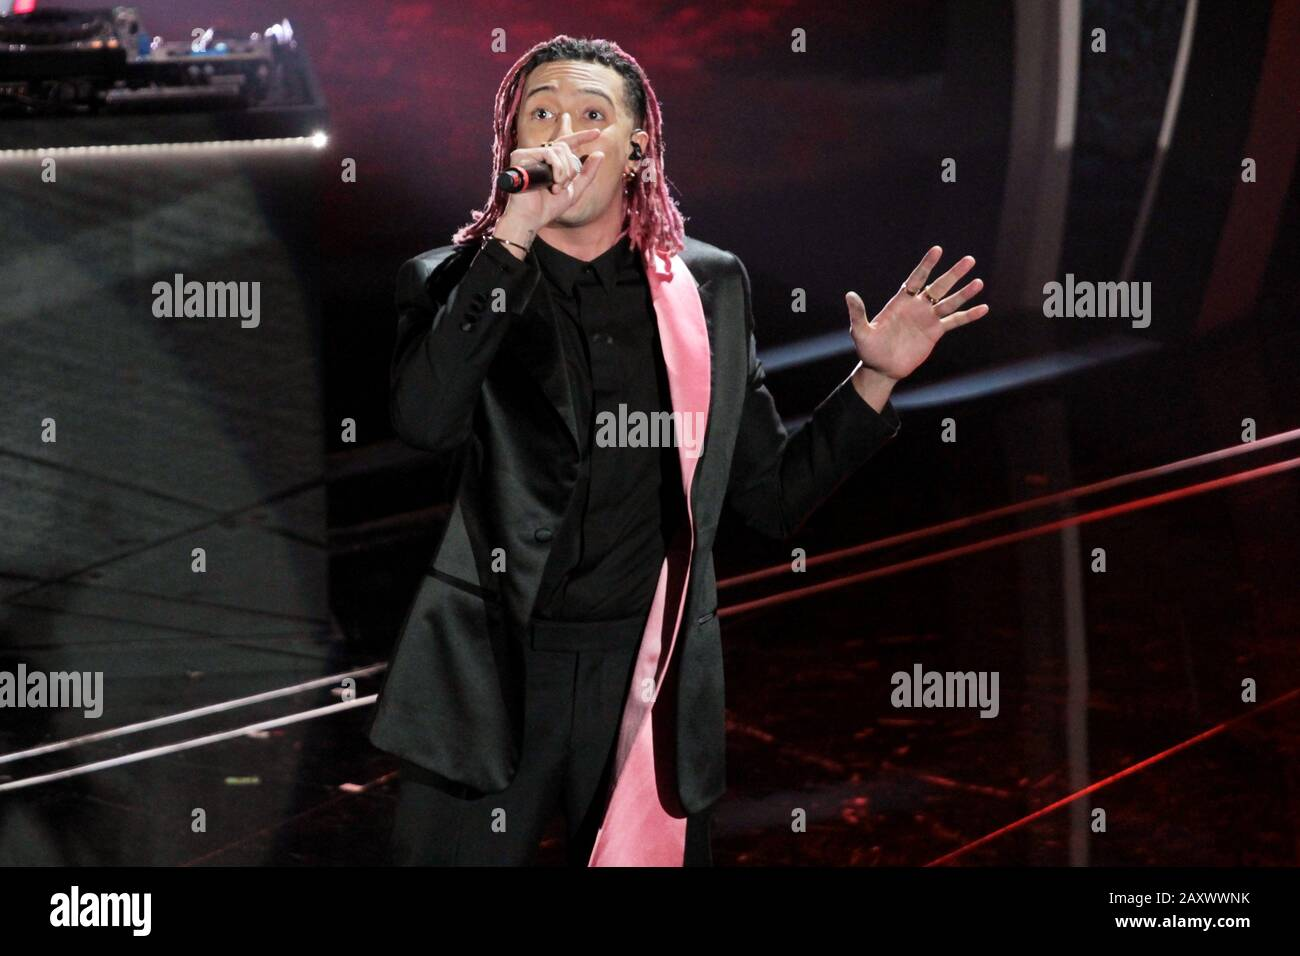 Ghali Music High Resolution Stock Photography and Images   Alamy